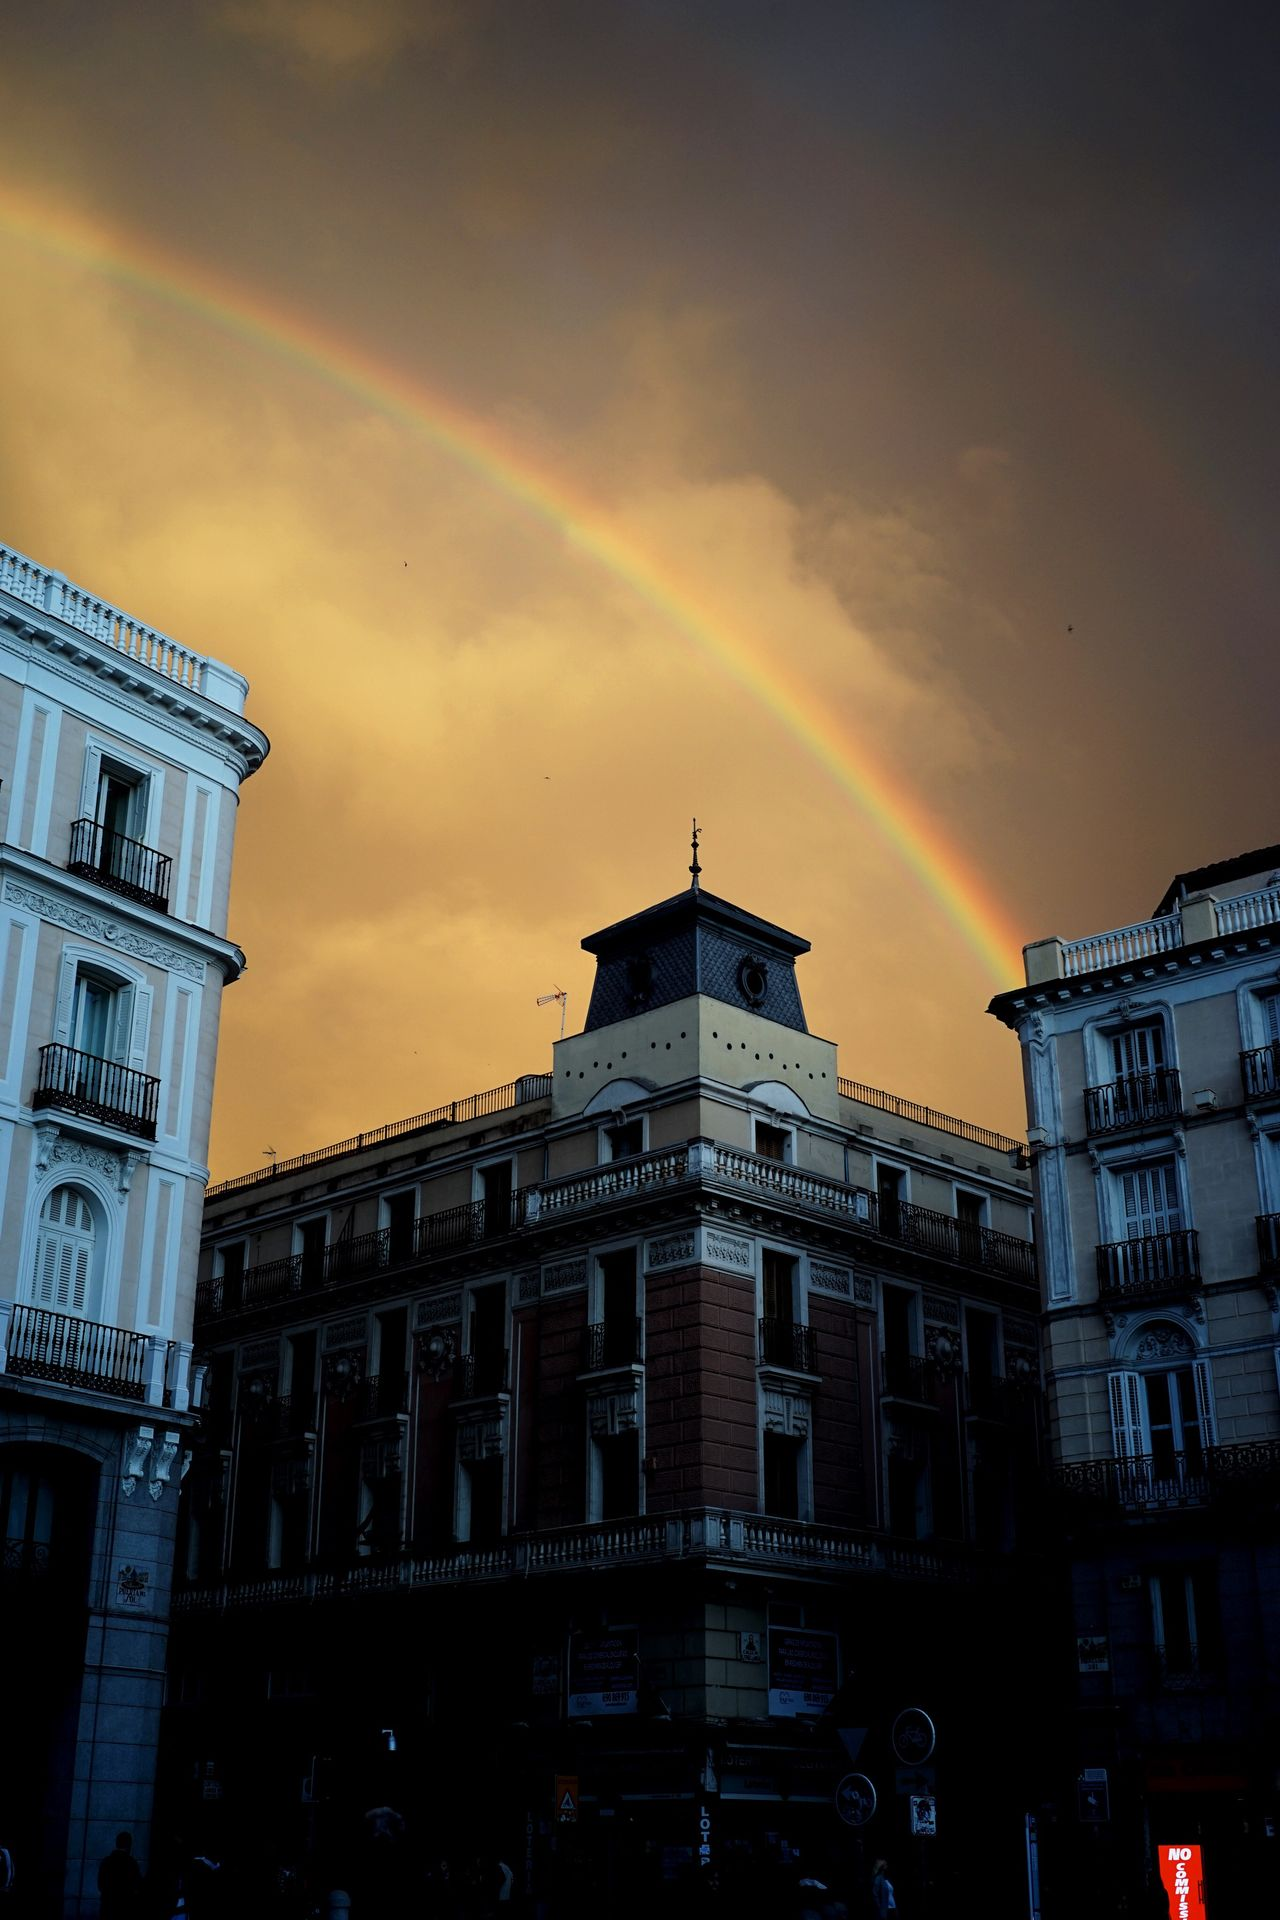 Eurotrip Rainbow City Life Europe España Cityscape Madrid SONY A7ii SPAIN Travel Travel Photography Streetphotography Magic Hour Ciudad Traveler Backpackers Backpacker Sunshine Clouds And Sky Europe Trip European Union City View  Cityscapes